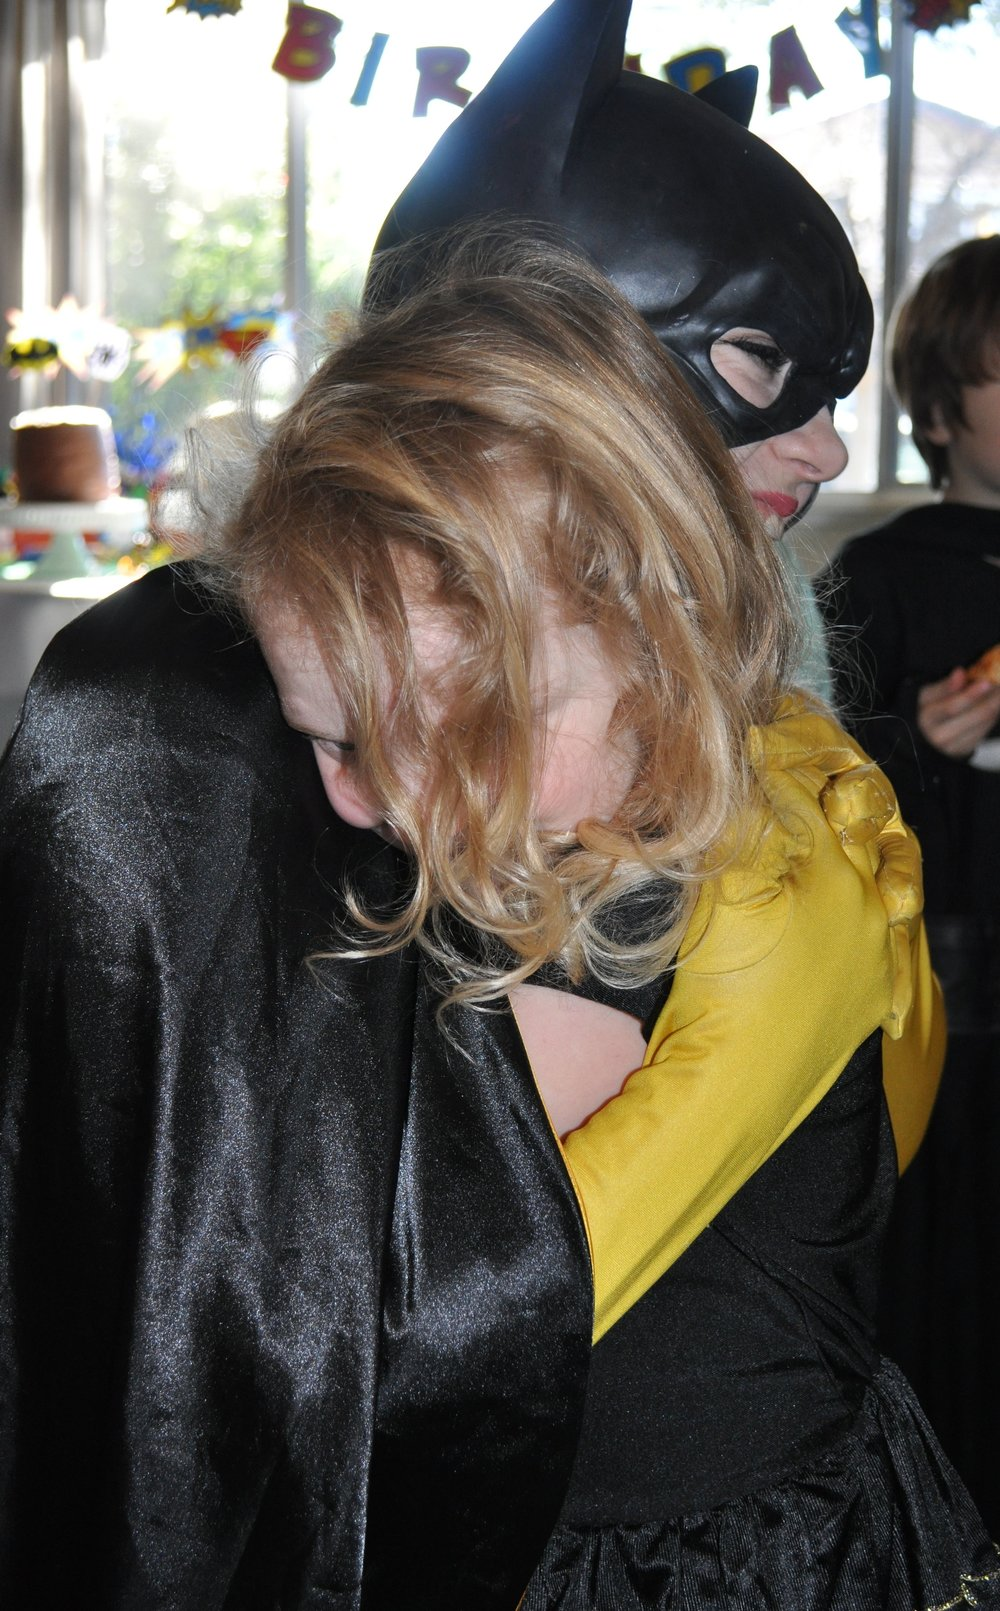 G was in awe that she got a hug from Batgirl. Darn that hair in her eyes, though.